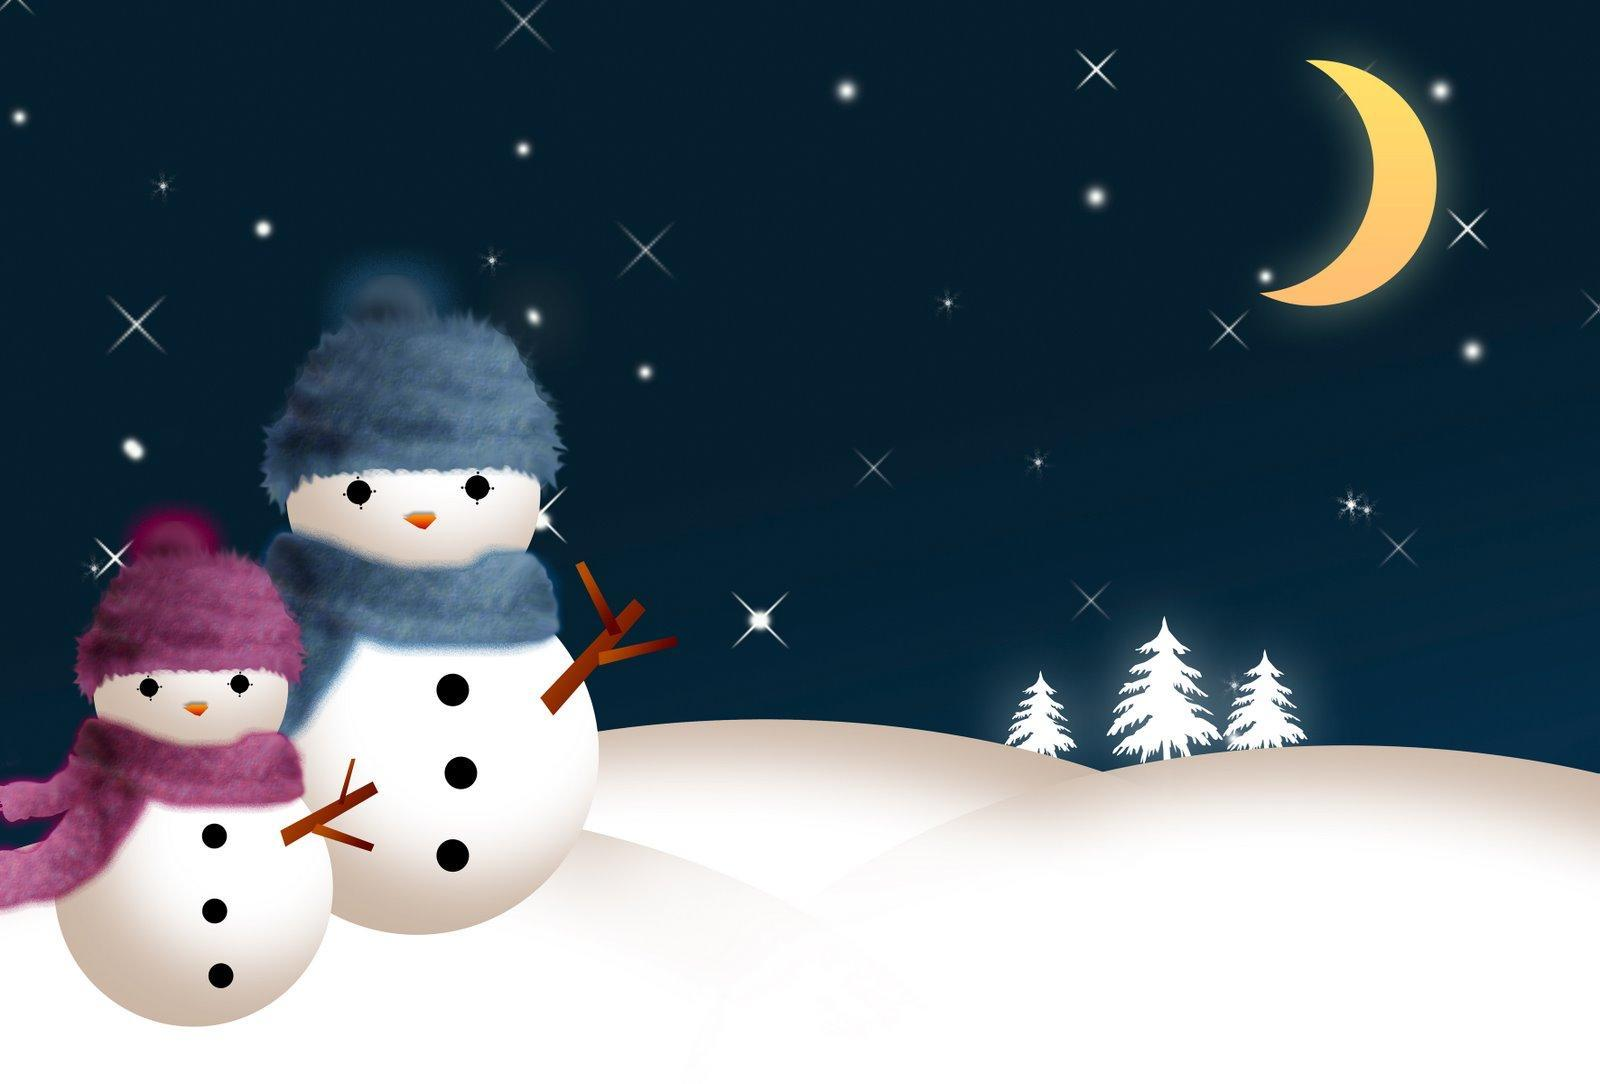 Wallpapers For > Snowman Desktop Backgrounds